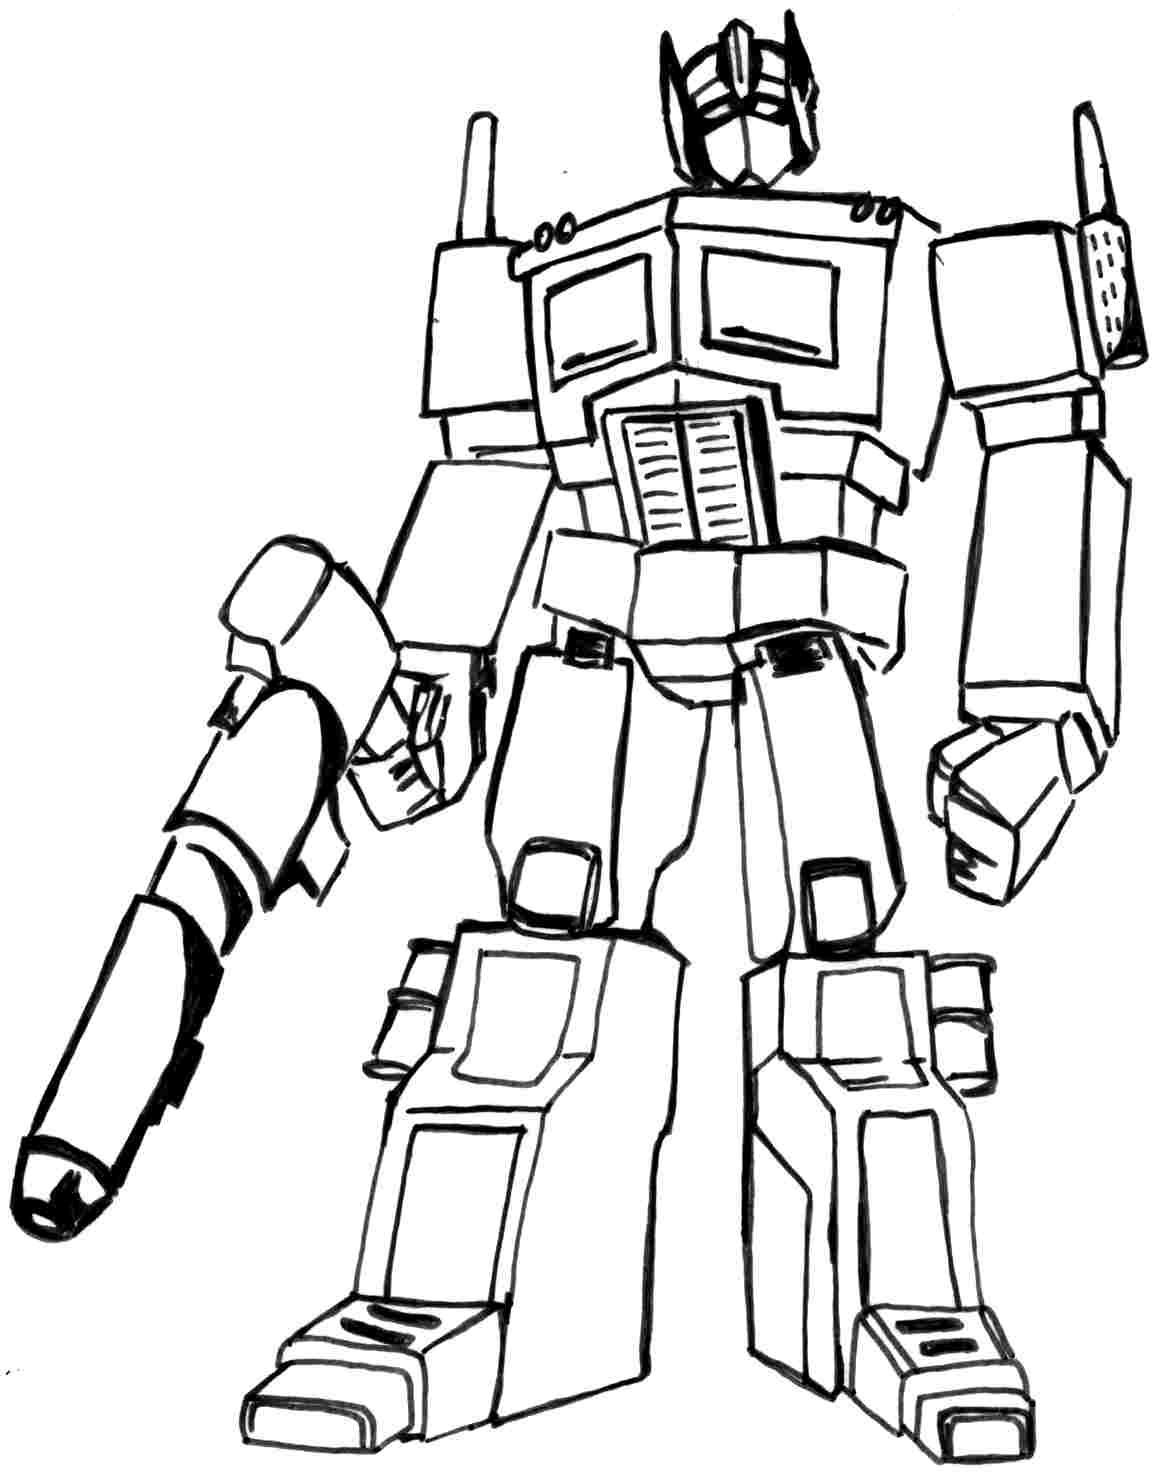 free coloring pages for boys transformers costume | Free Coloring Pages For Boys Transformers - Coloring Home